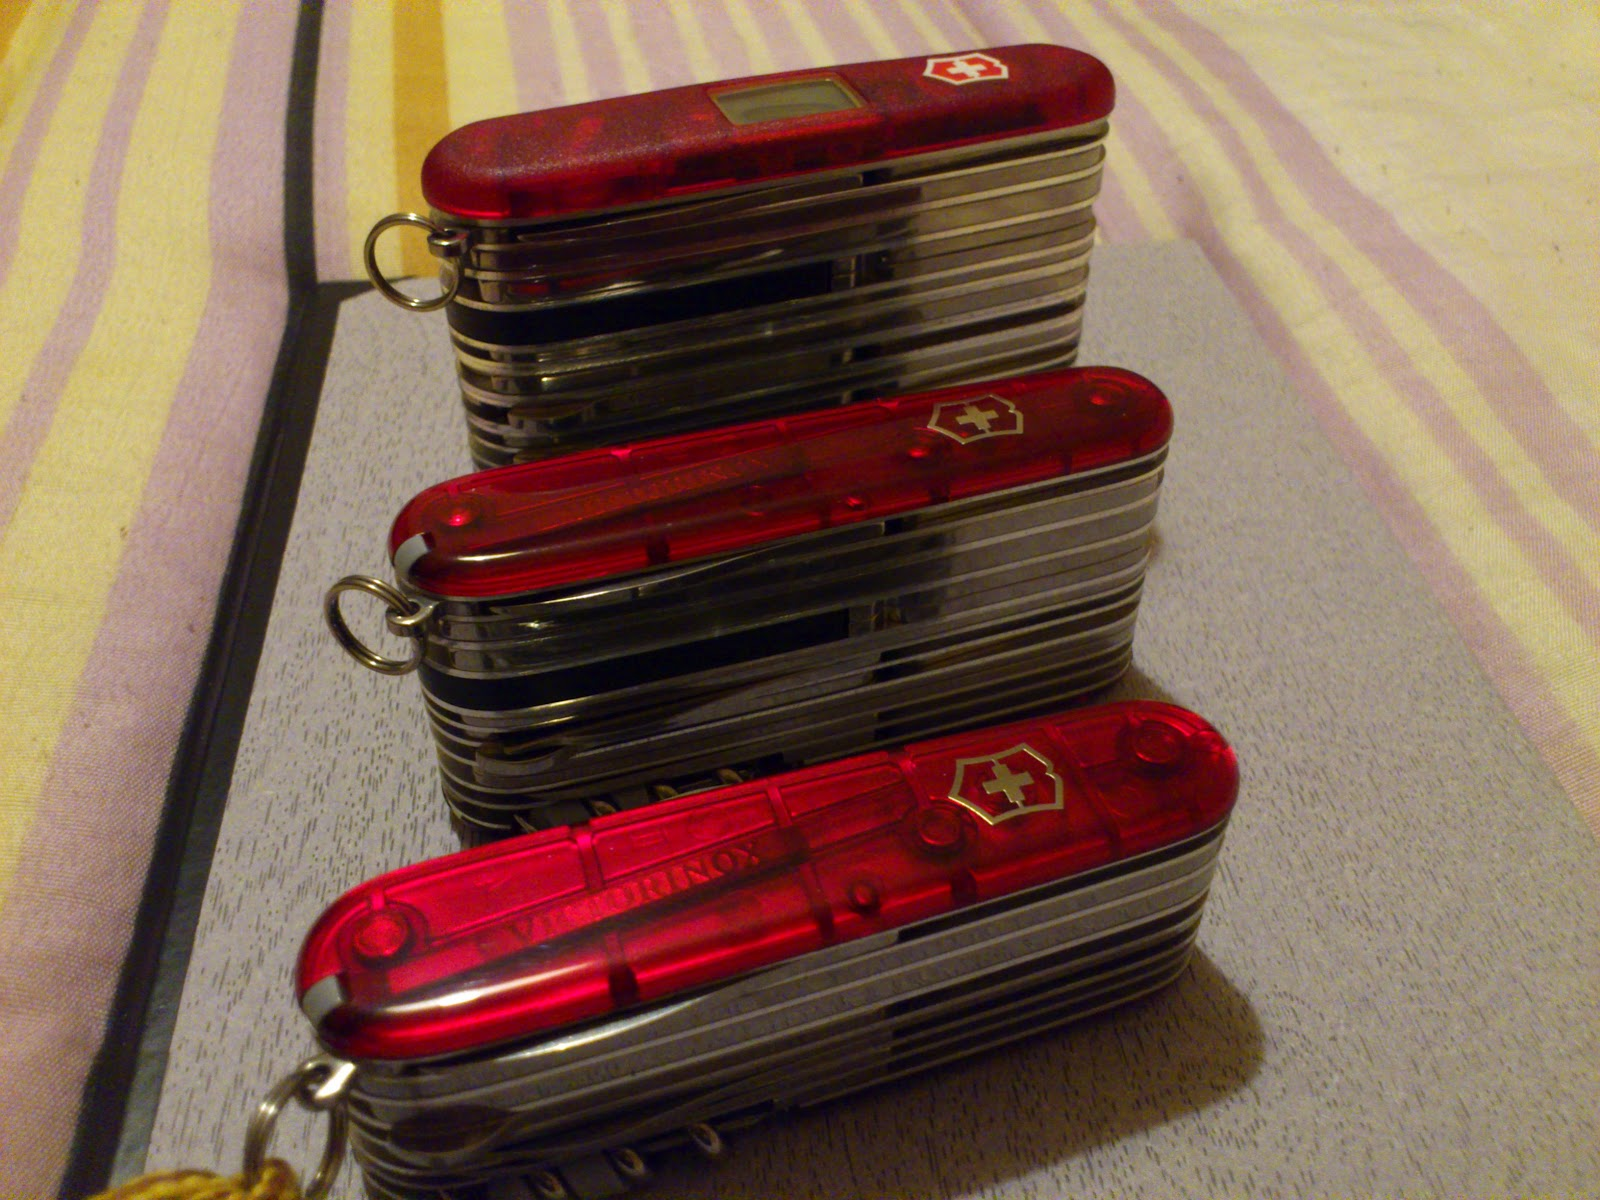 Mario S Swiss Army Knives Victorinox Swisschamp Xlt And